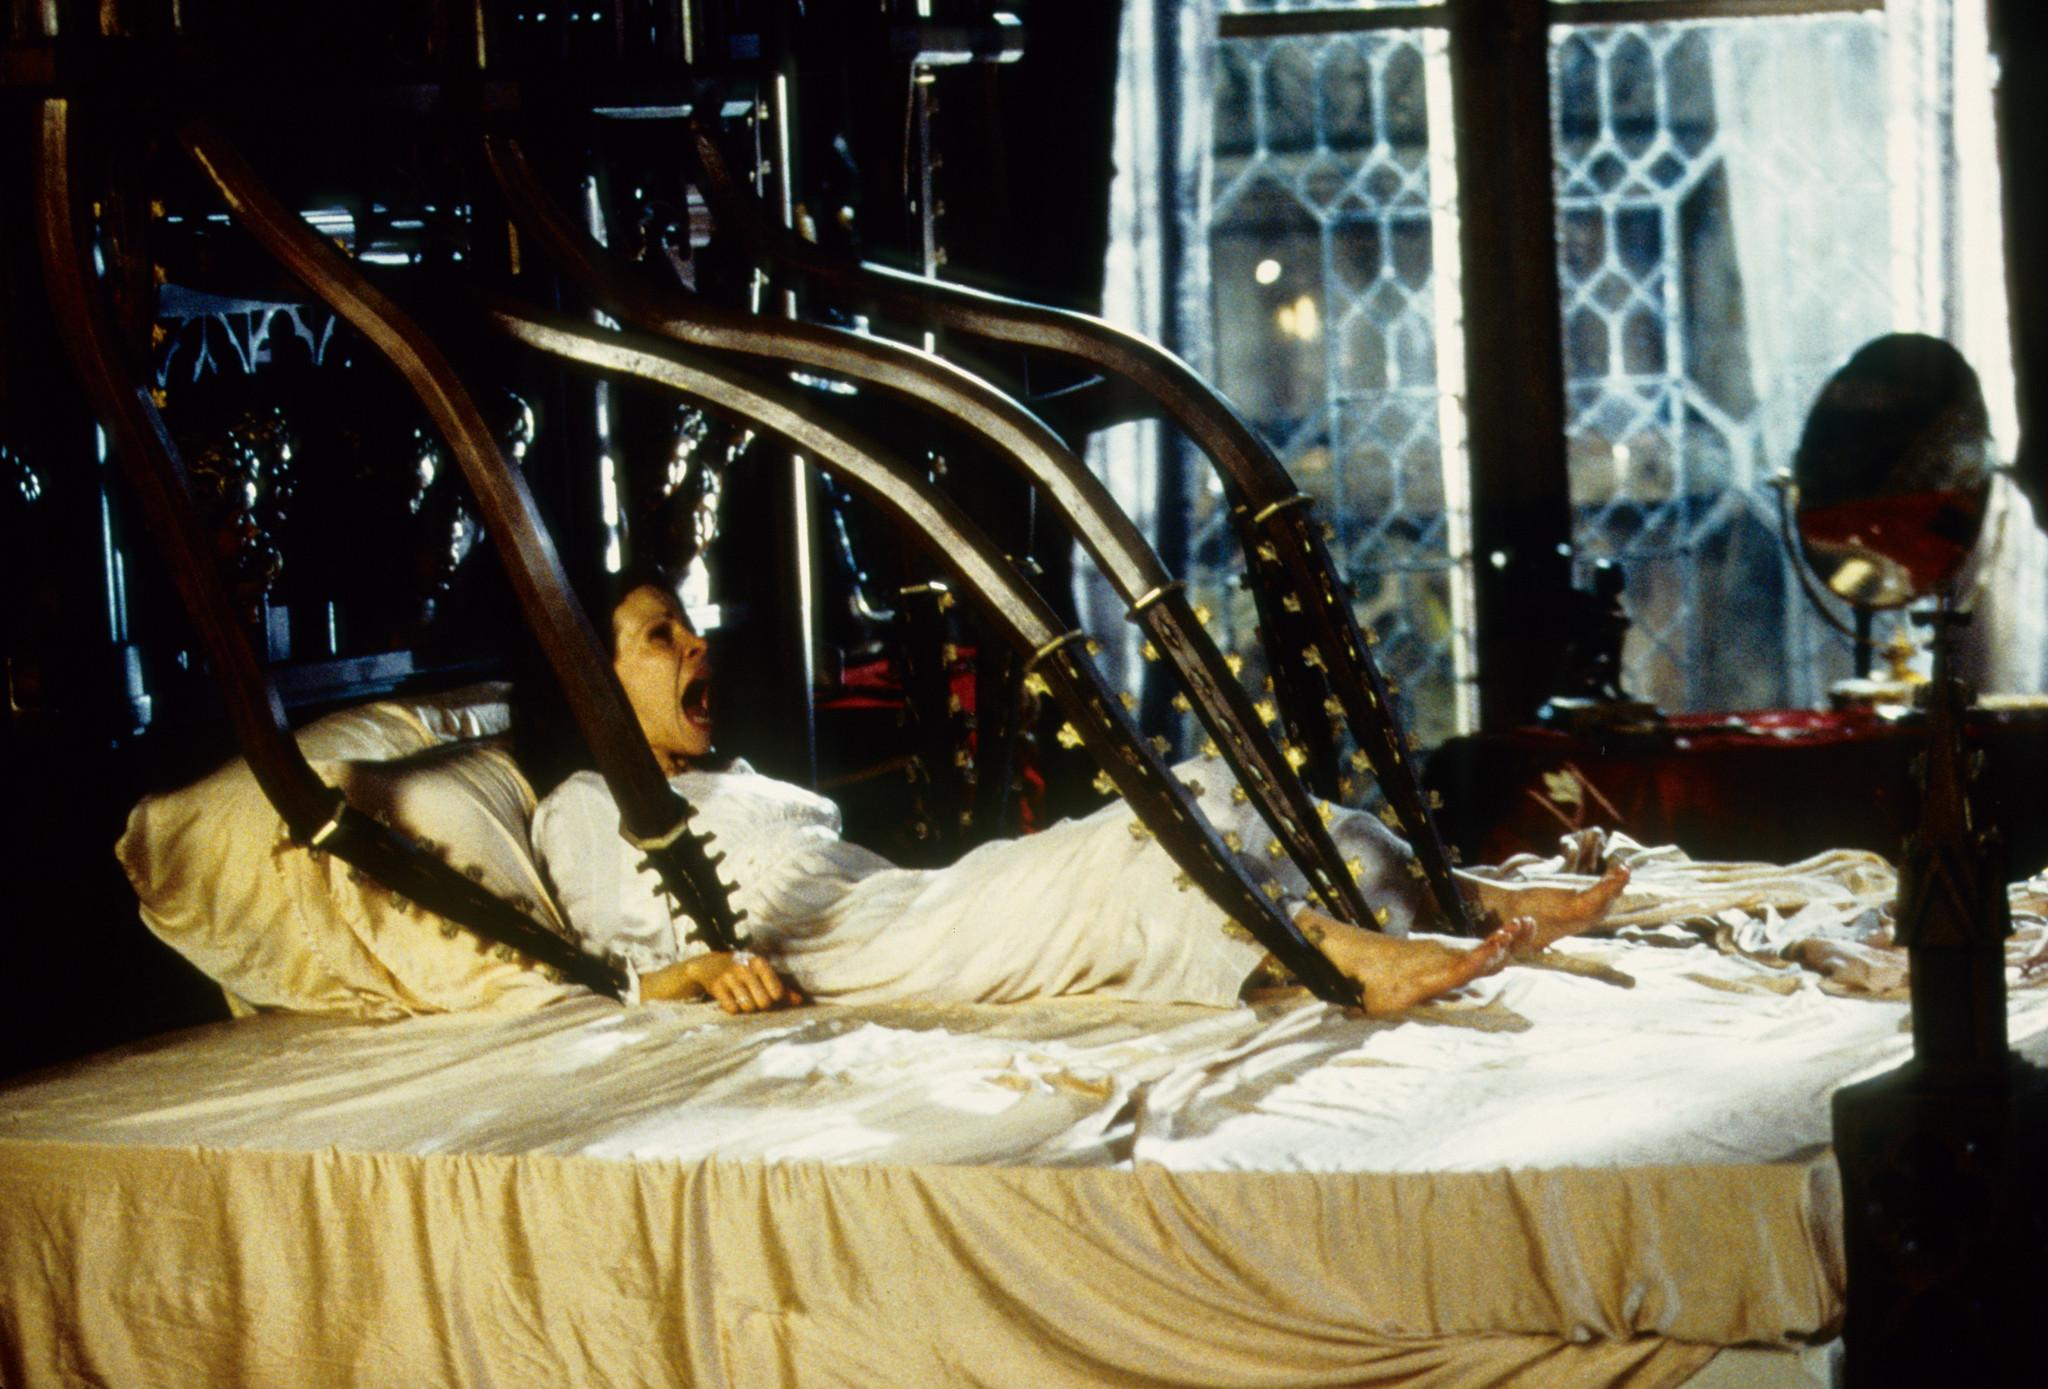 Lili Taylor attacked by a wrought iron bed in The Haunting (1999)